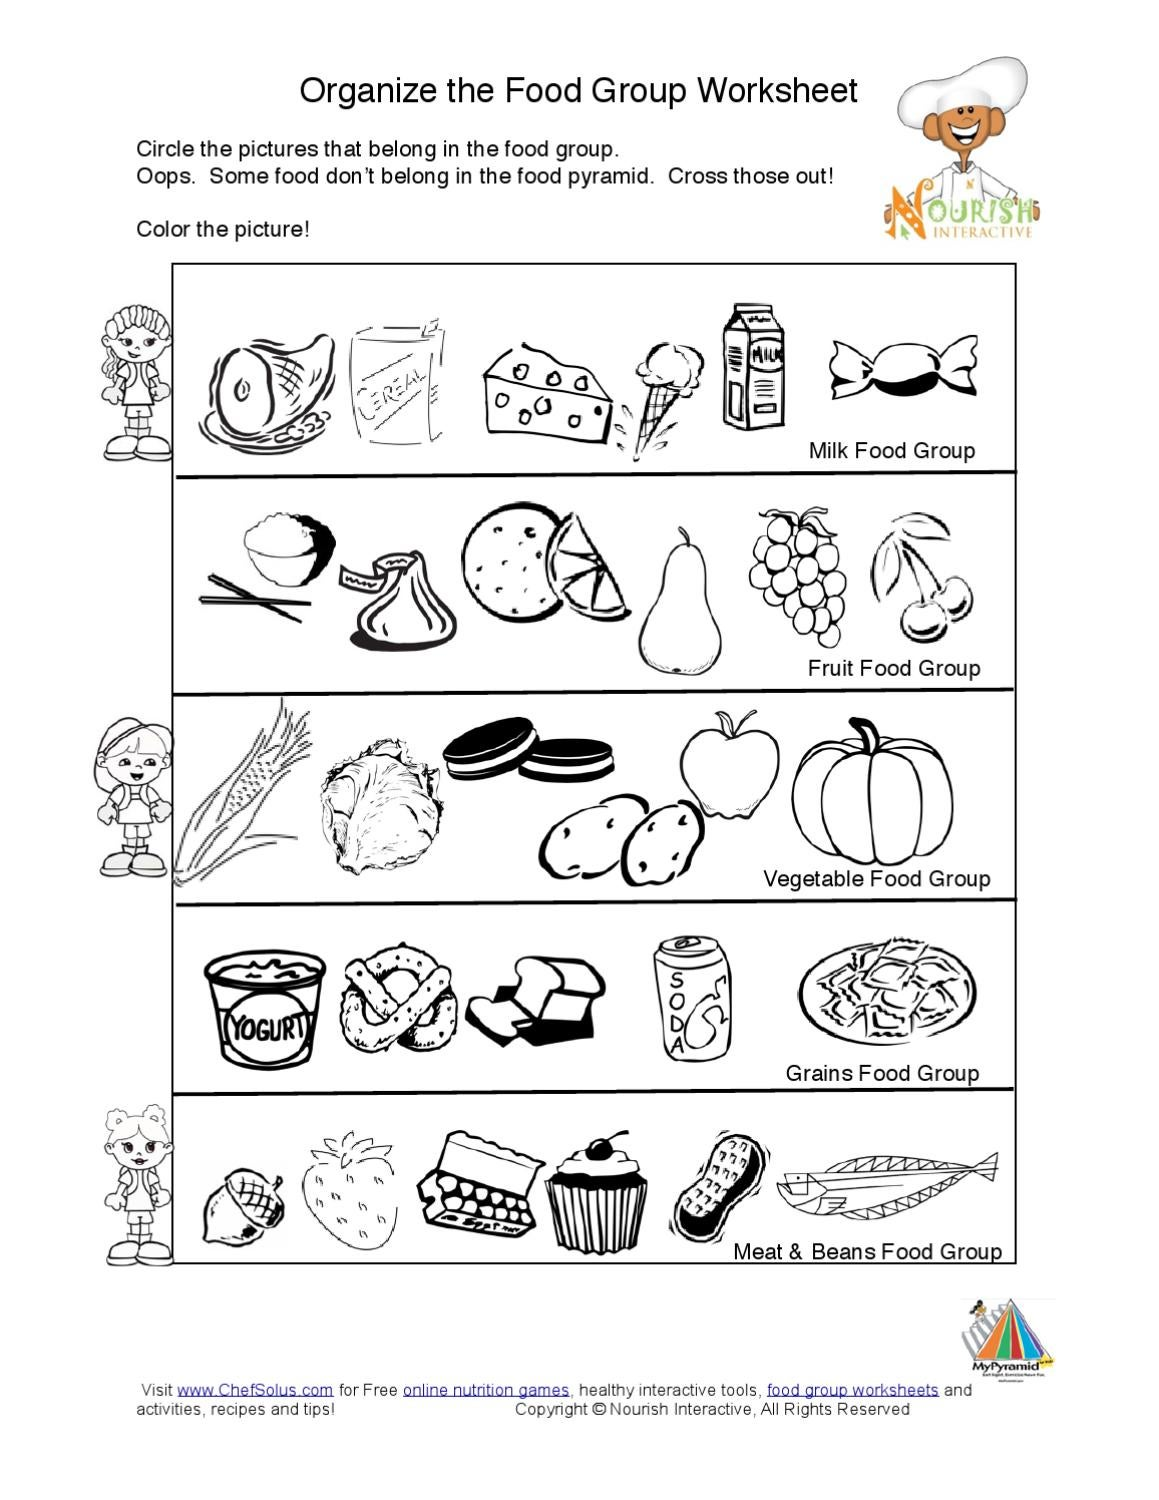 kids food pyramid food groups learning nutrition worksheet K 5